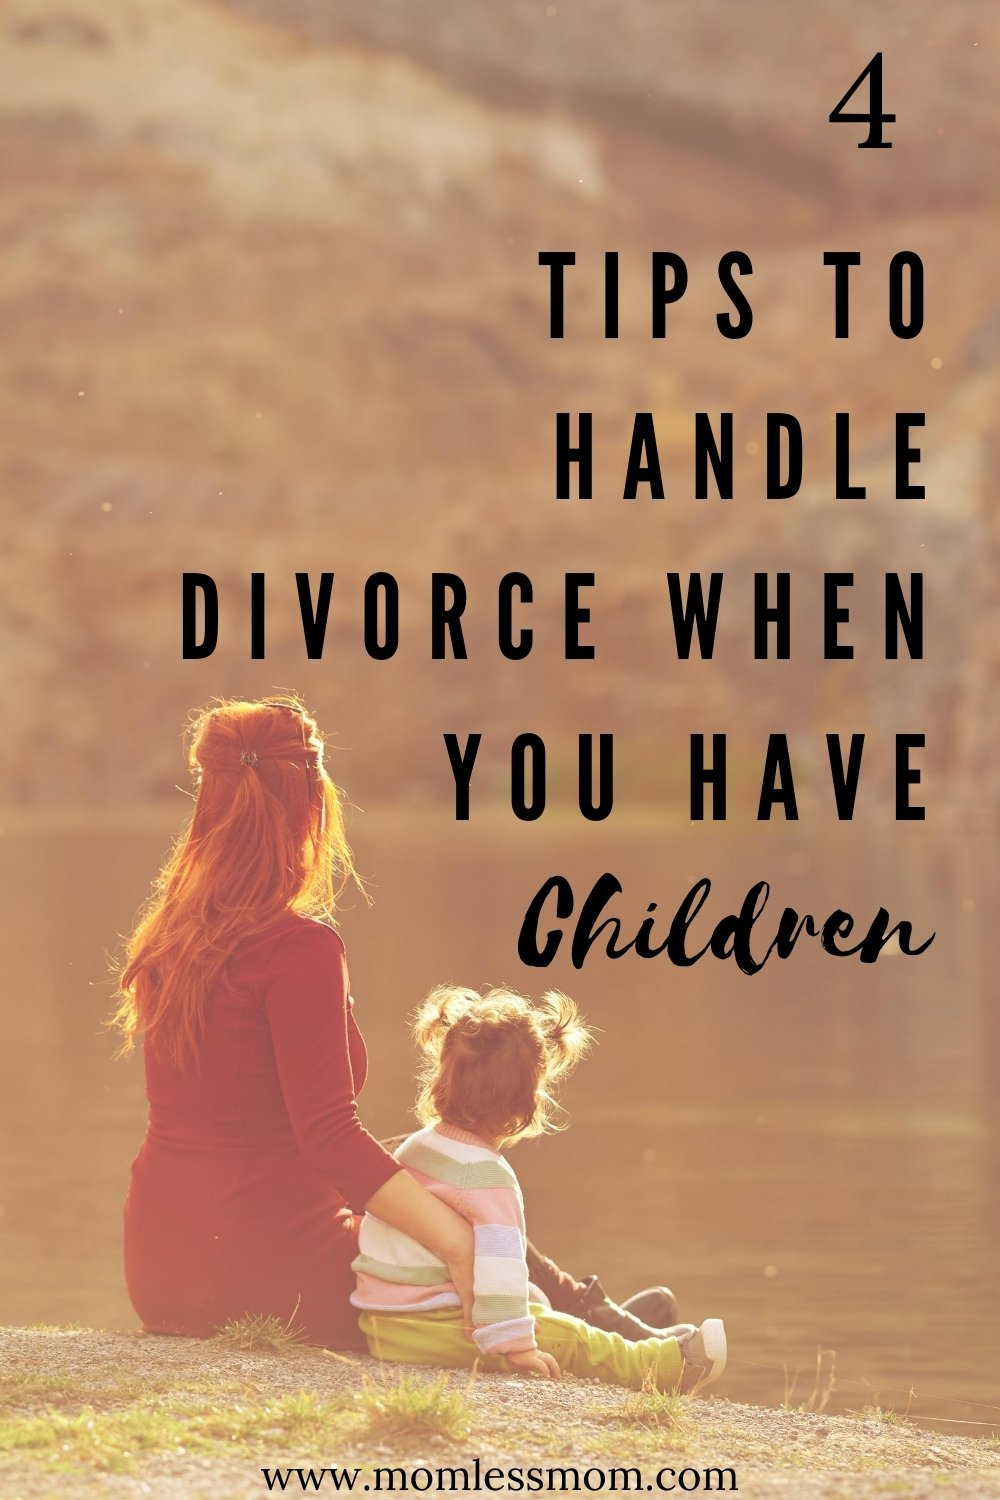 4 divorce tips when you have children